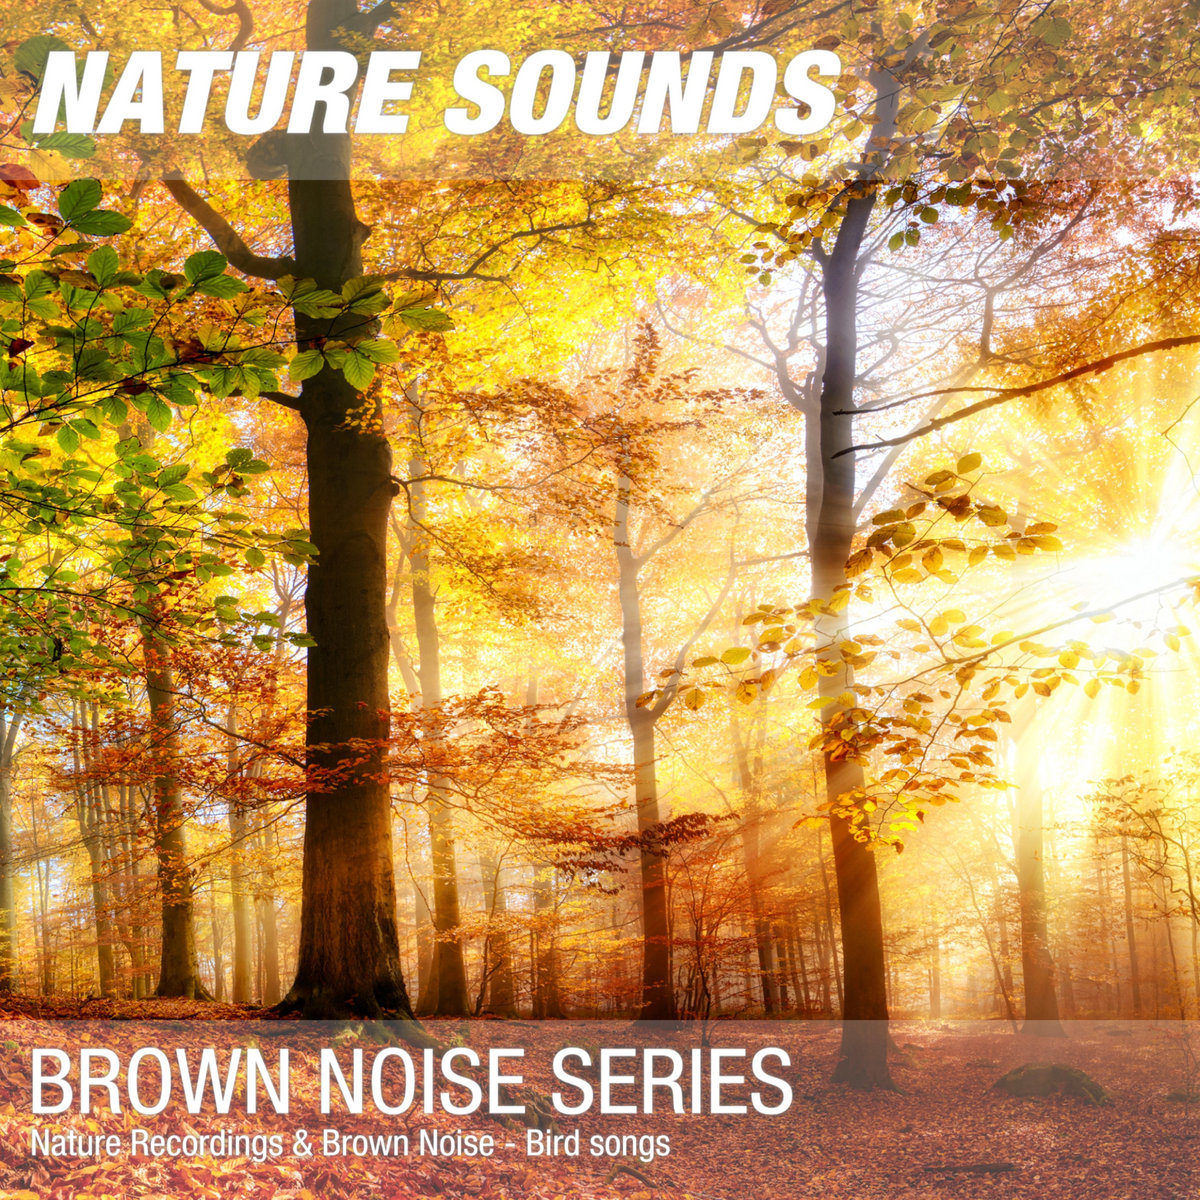 Nature Sounds for Sleep & Relaxation (Forest, birds, brown noise) 04